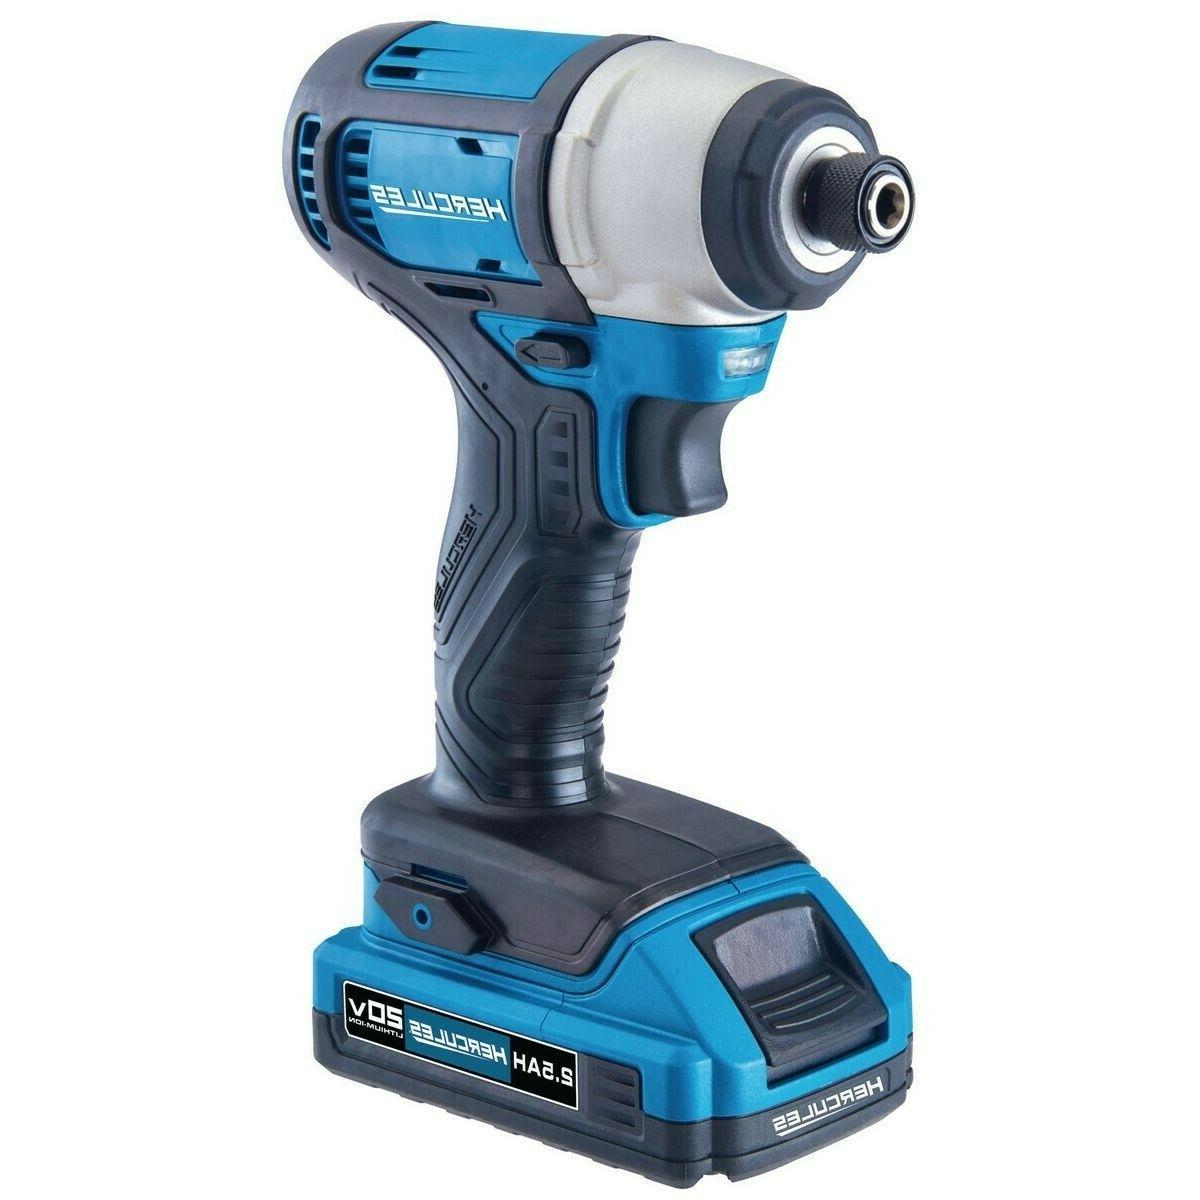 20V Cordless in Hex Compact Driver Wood Drywall